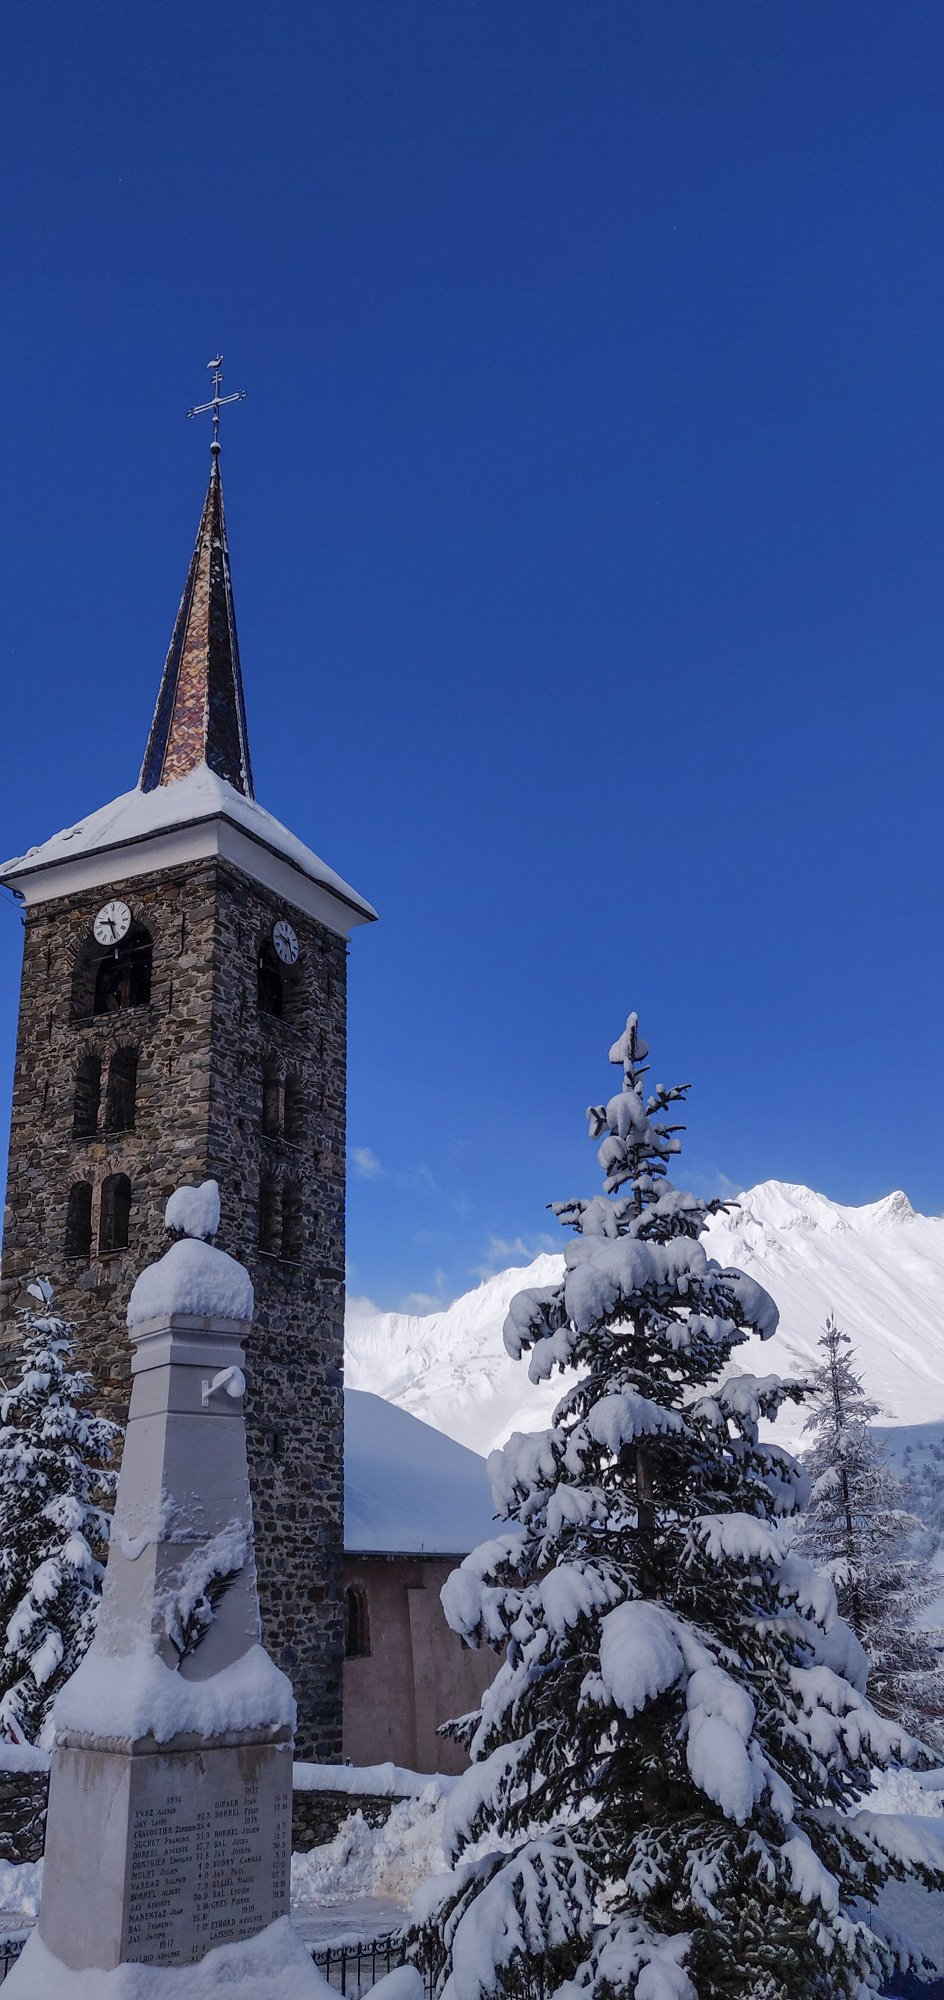 St Martin's main church covered in snow